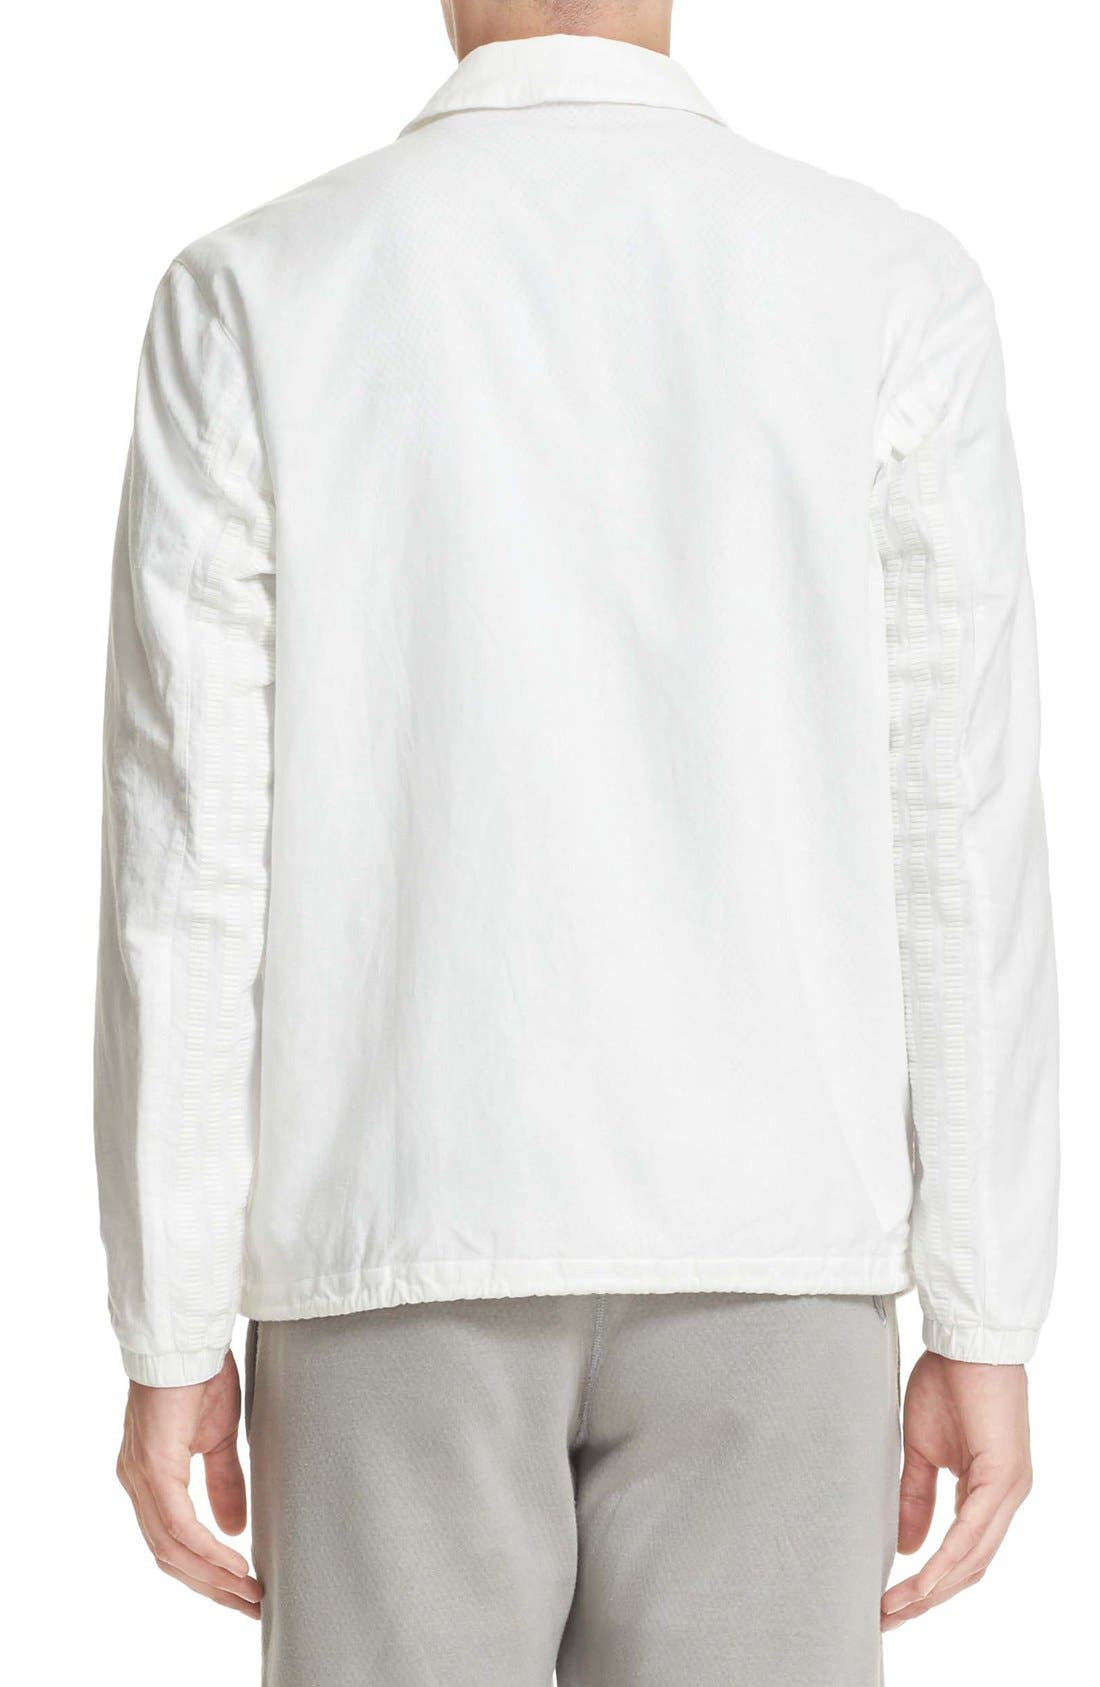 Cotton & Linen Coach Jacket,                             Alternate thumbnail 2, color,                             Off White